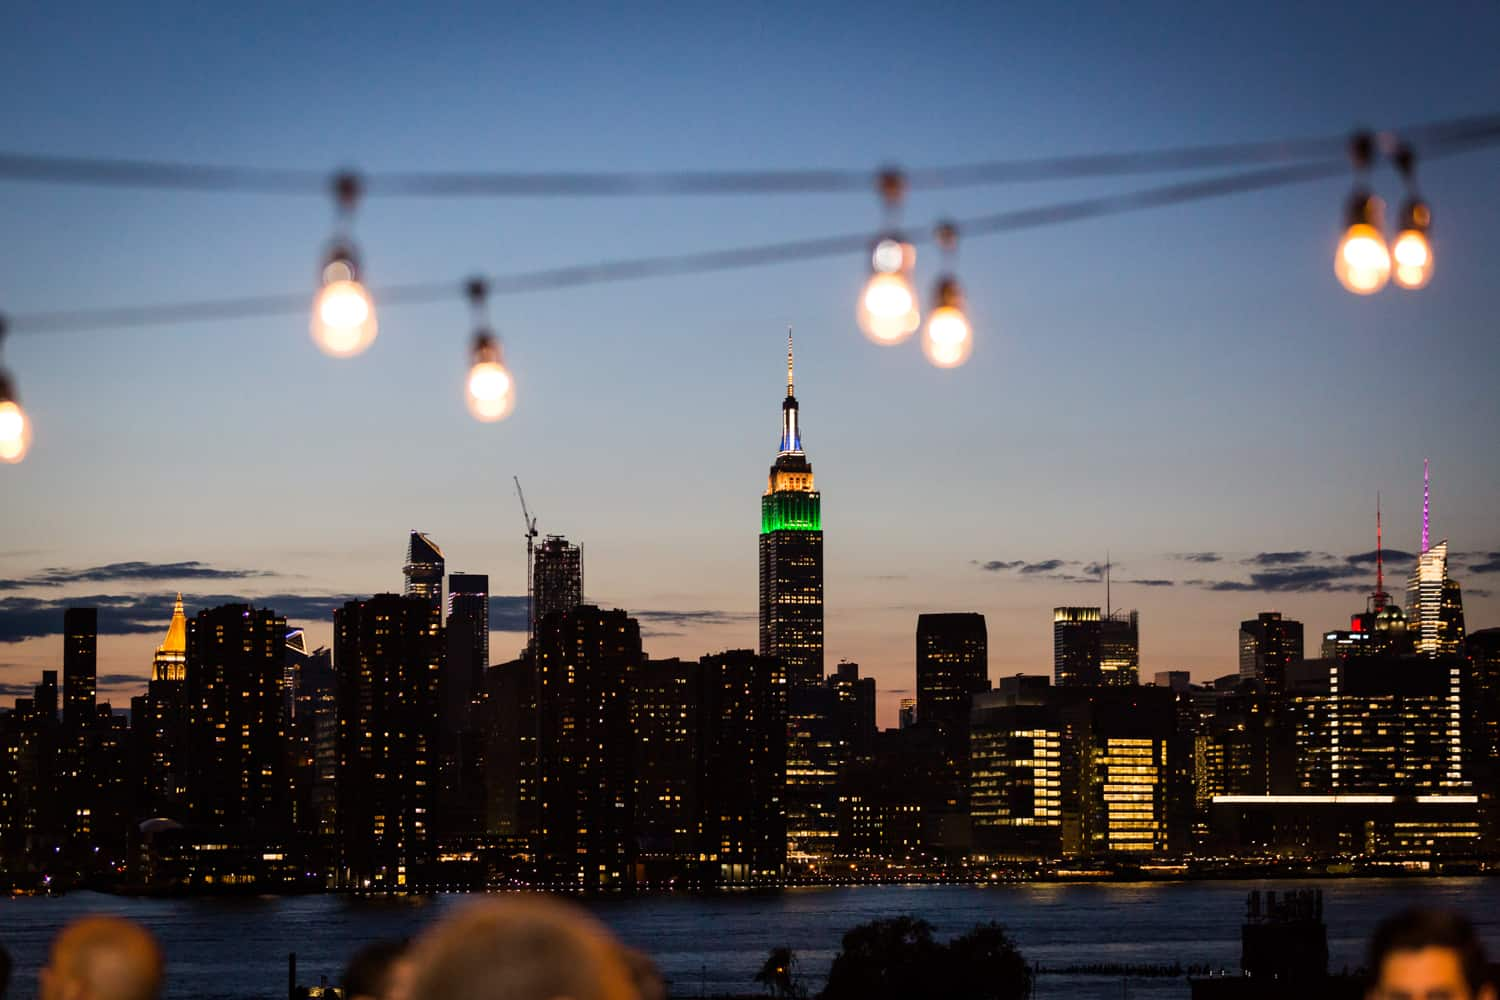 Rooftop view of Empire State Building with strings of lights at dusk